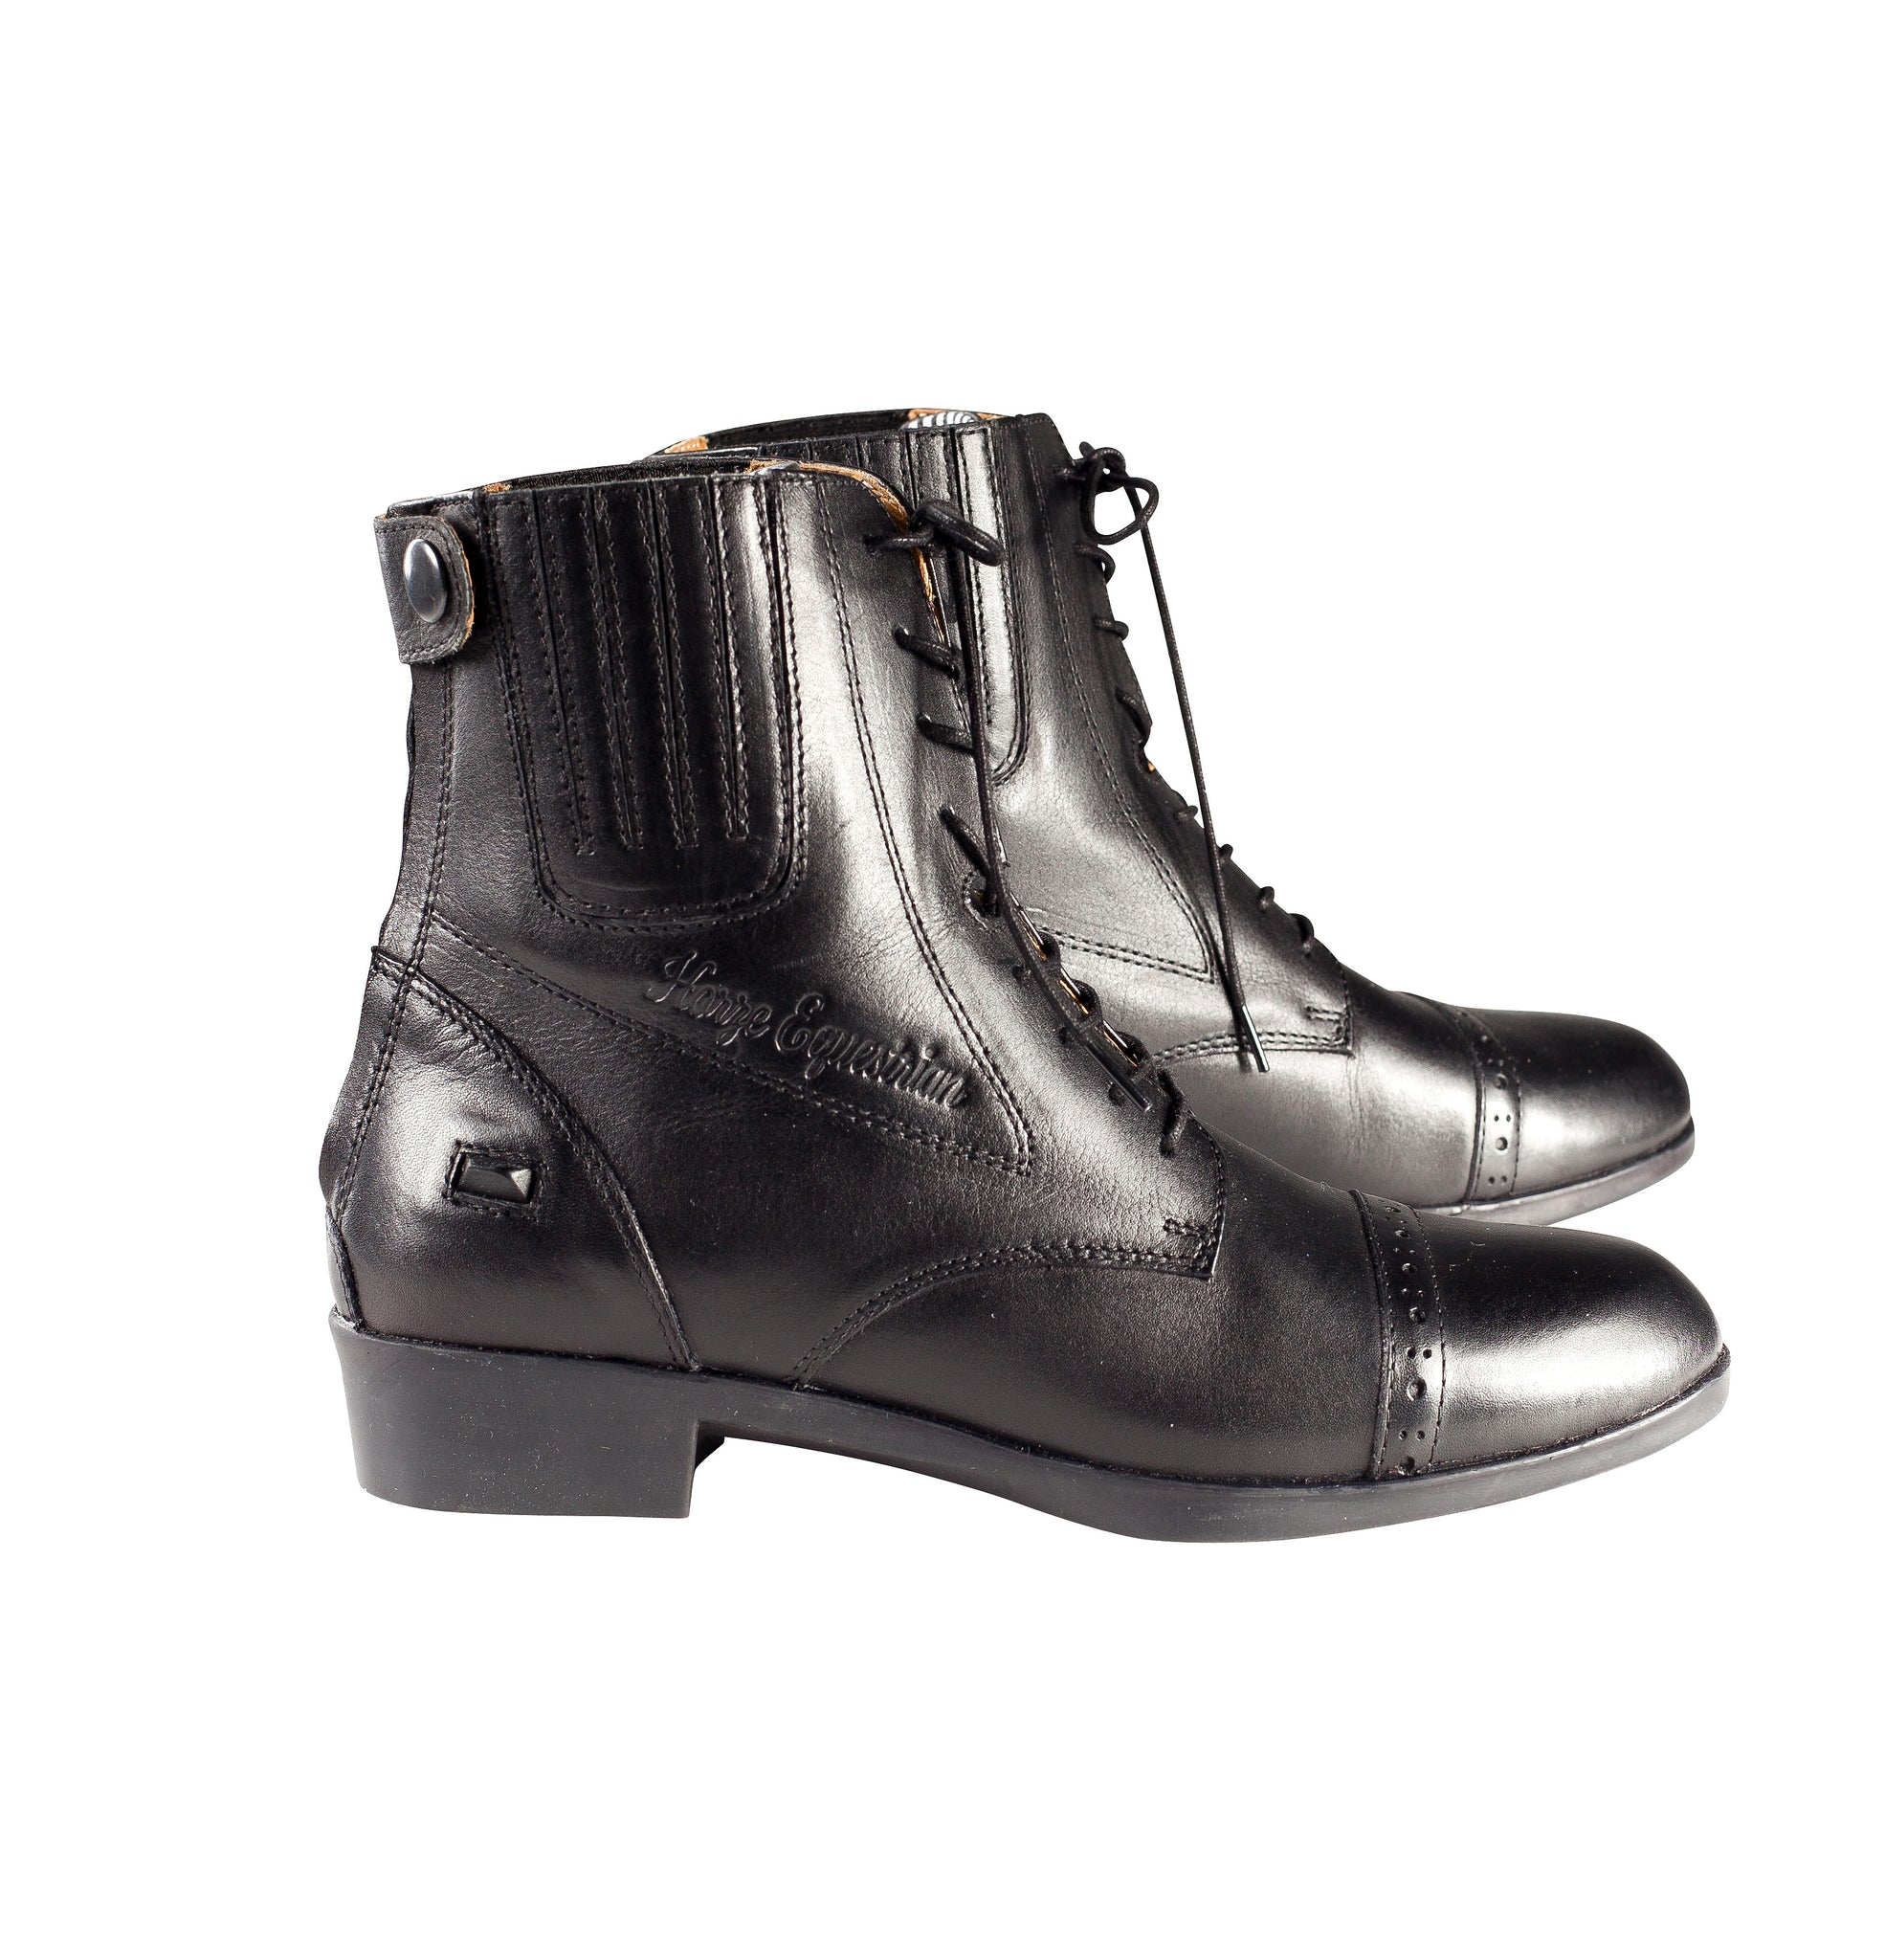 Hampton Leather Jodhpur boot